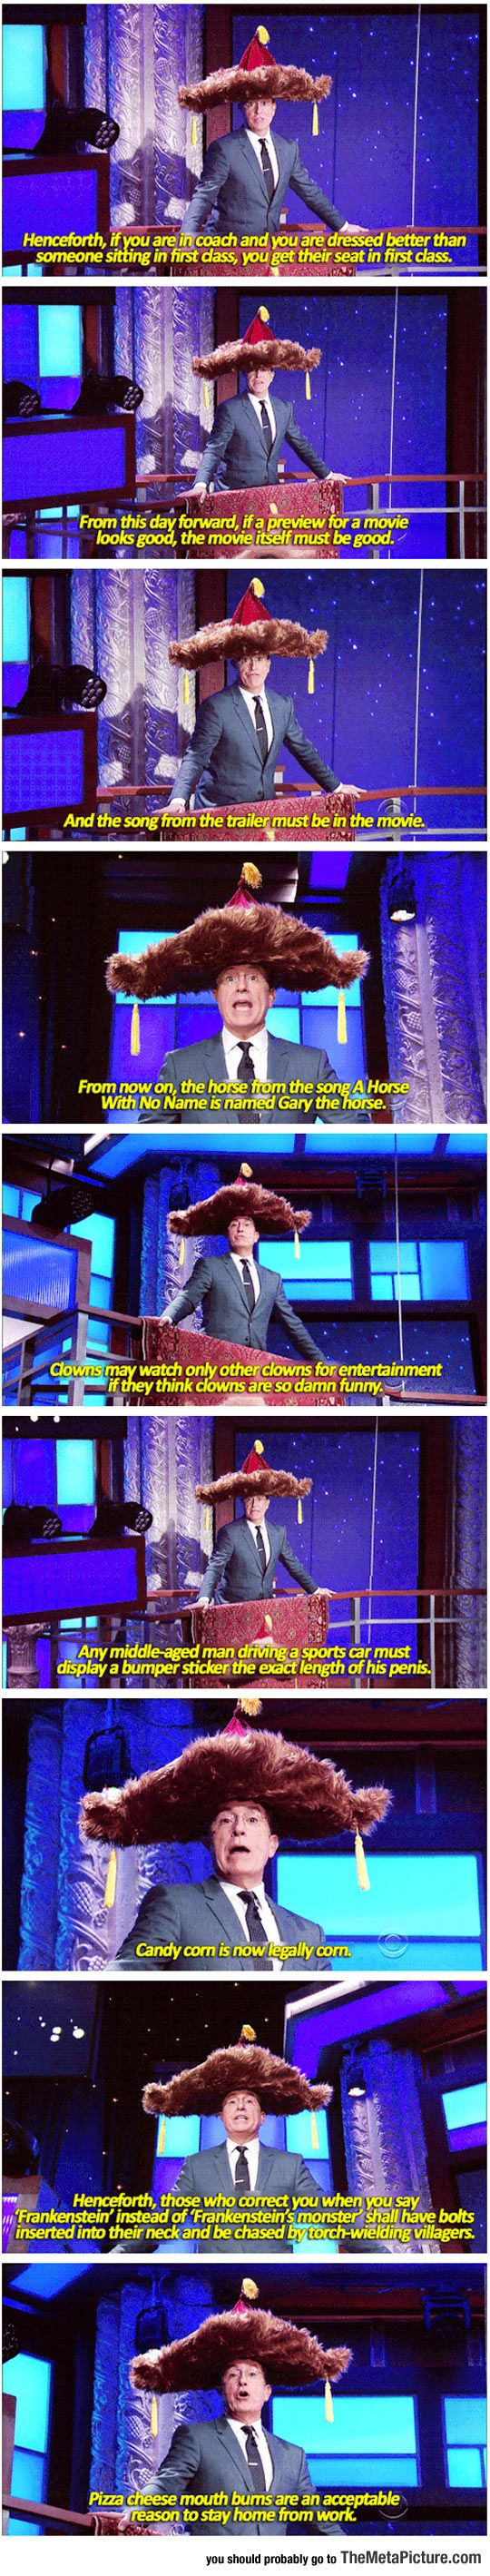 Stephen Colbert Issues New Proclamations